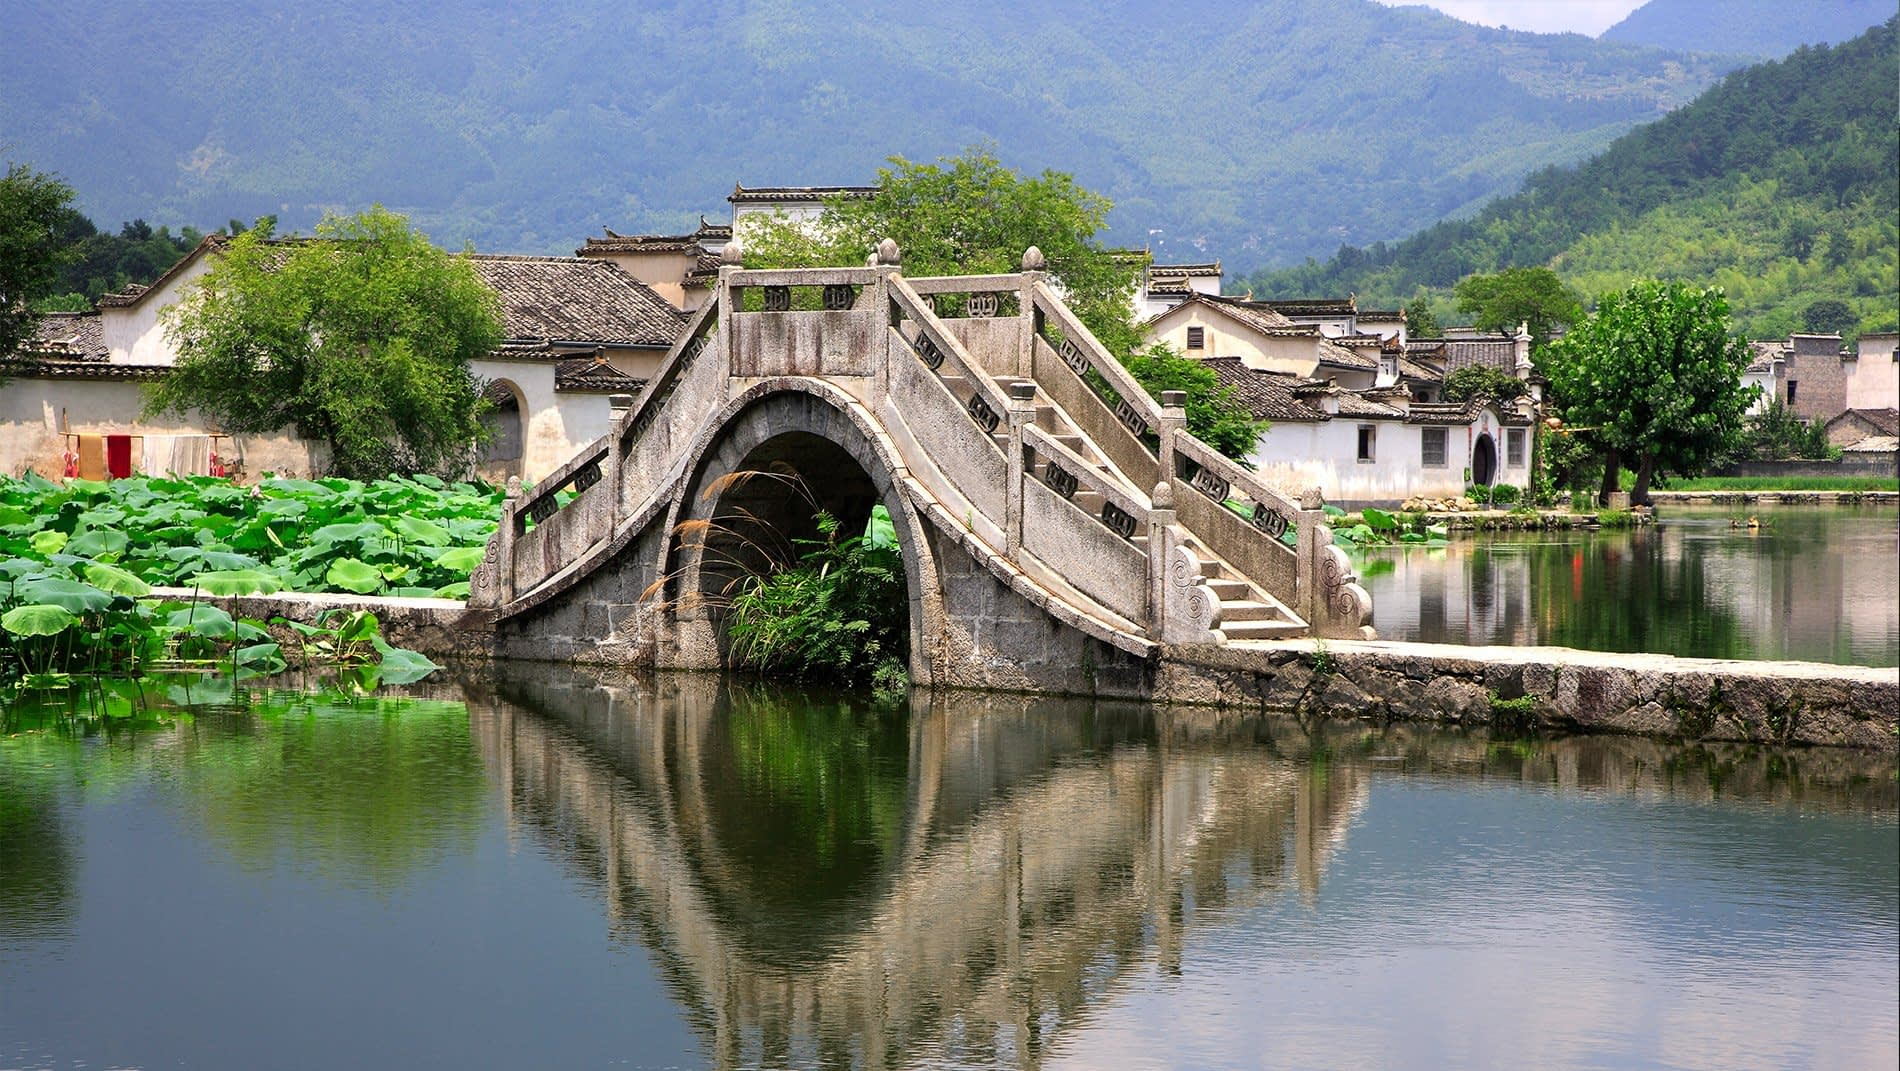 Huizhou Village Architecture~Apart from its practical uses for washing, drinking and food preparation, water plays a symbolic role in Huizhou architecture. Its collection, whether in an ornamental pond between the rooves of a courtyard house or outside a village, was considered a store of good fortune.